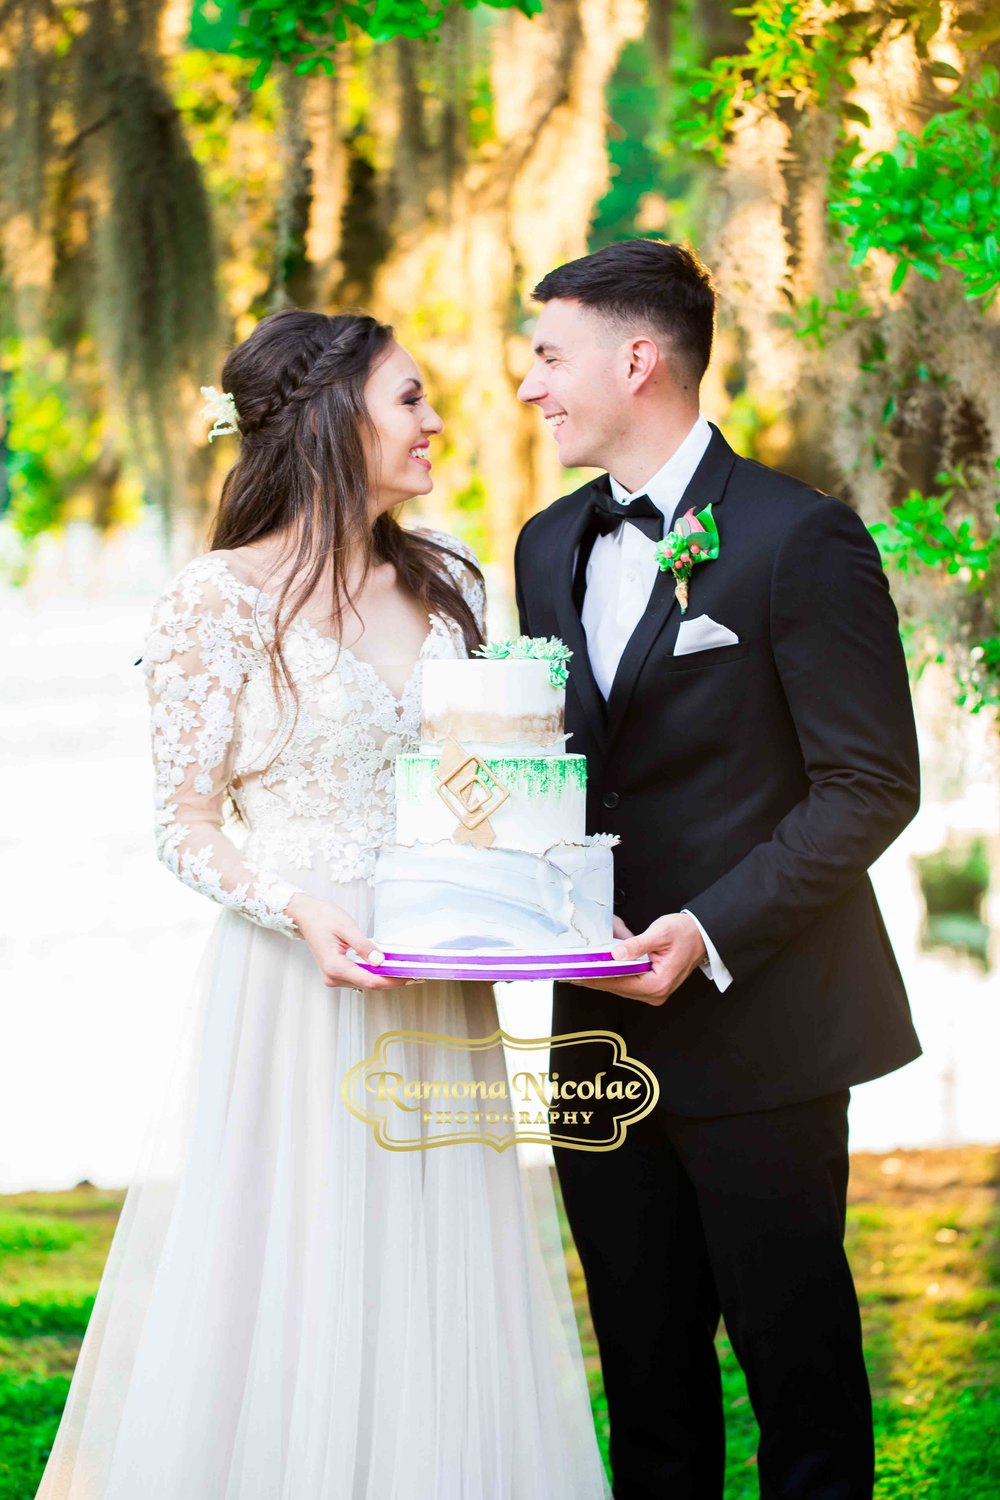 beautiful cake by pink pineapple bakery at wachesaw plantation by ramona nicolae photography.jpg